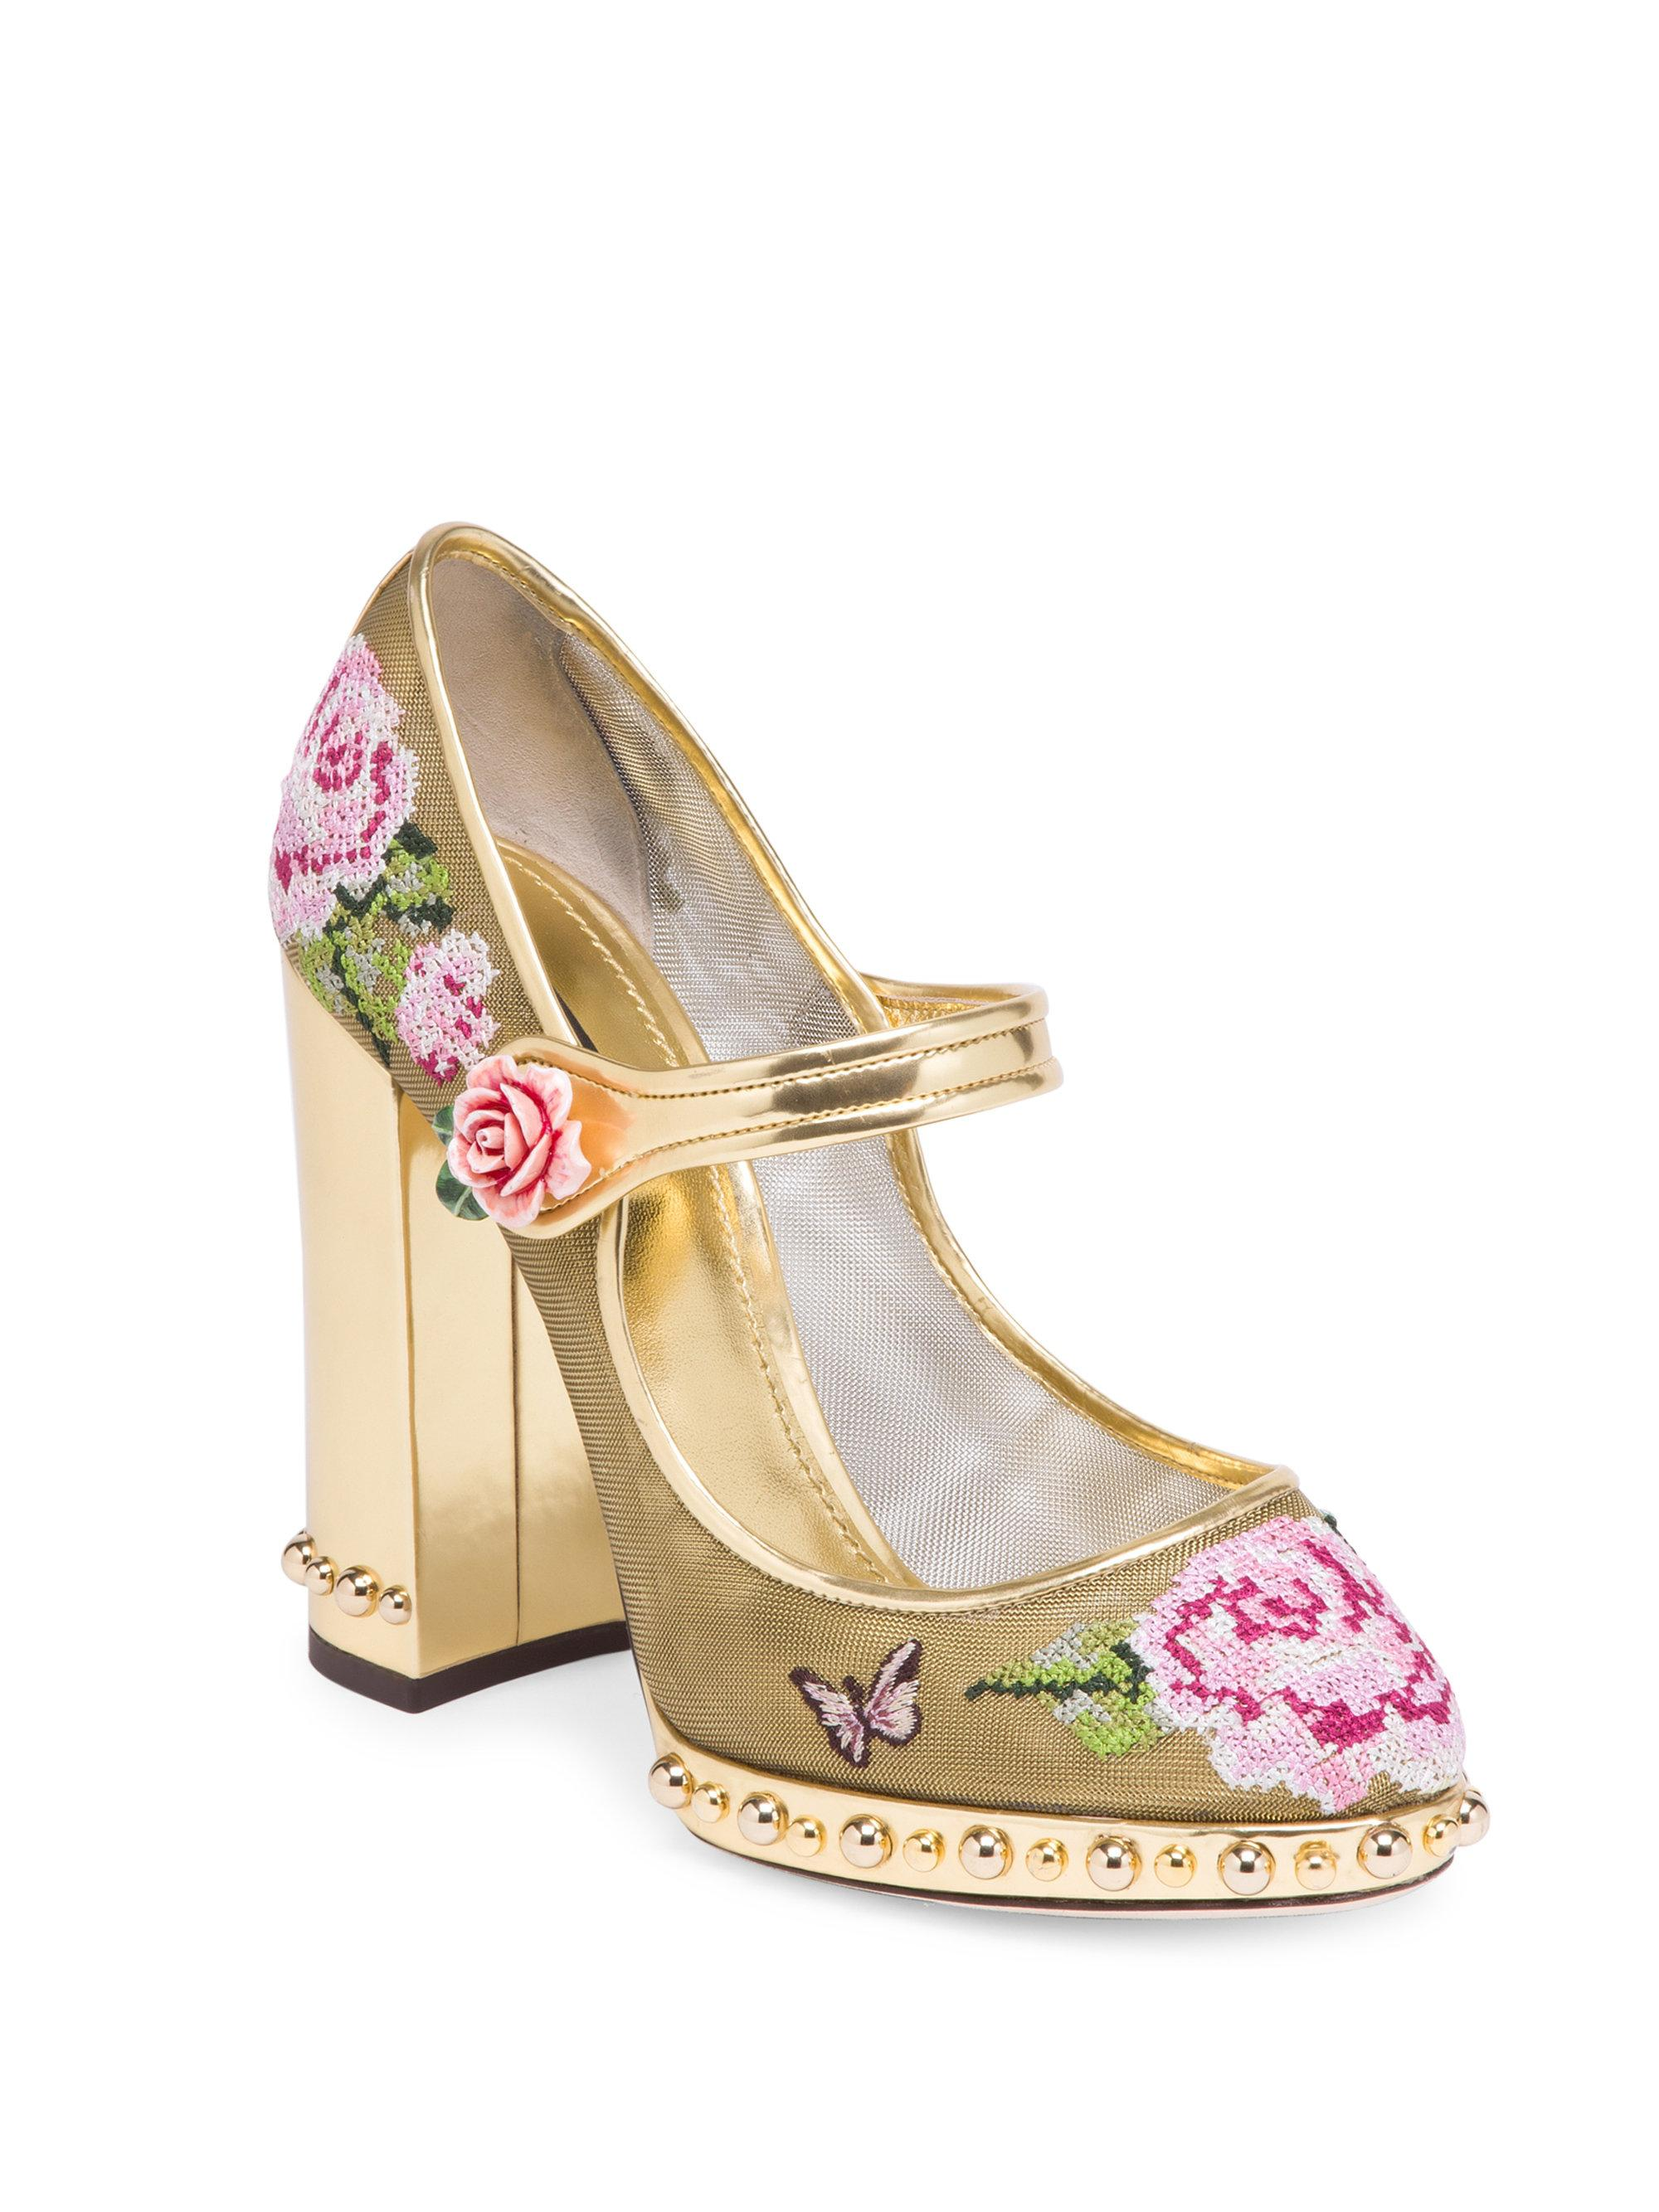 store sale online Dolce & Gabbana Woven Mary Jane Pumps cheap sale best place mqIsN1